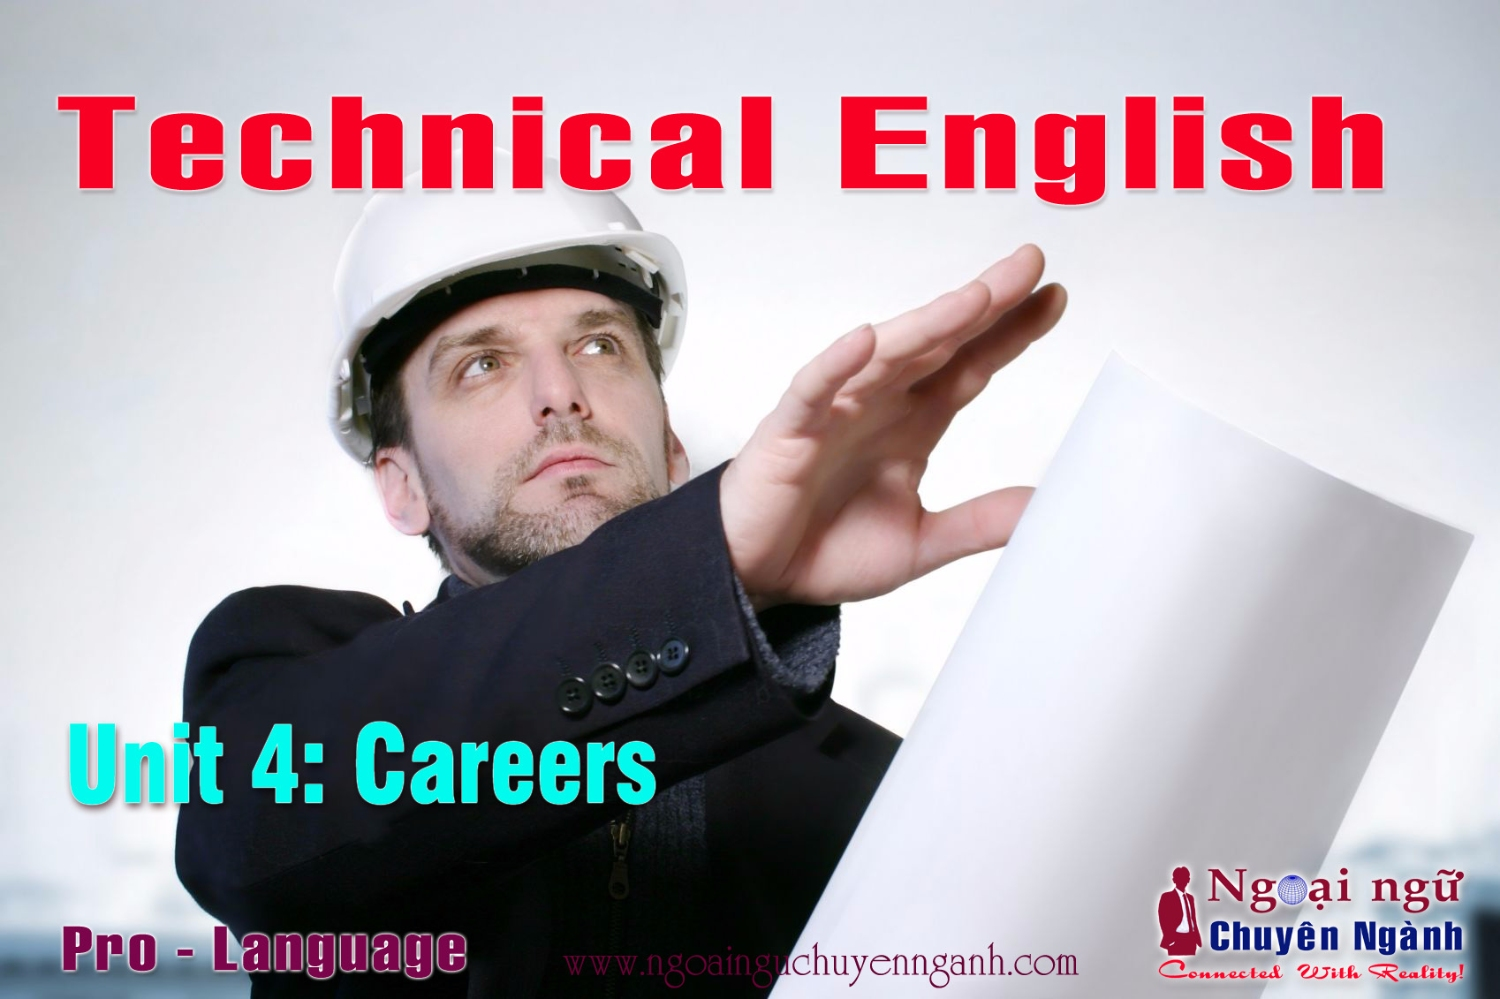 Technical English - Unit 4: Careers